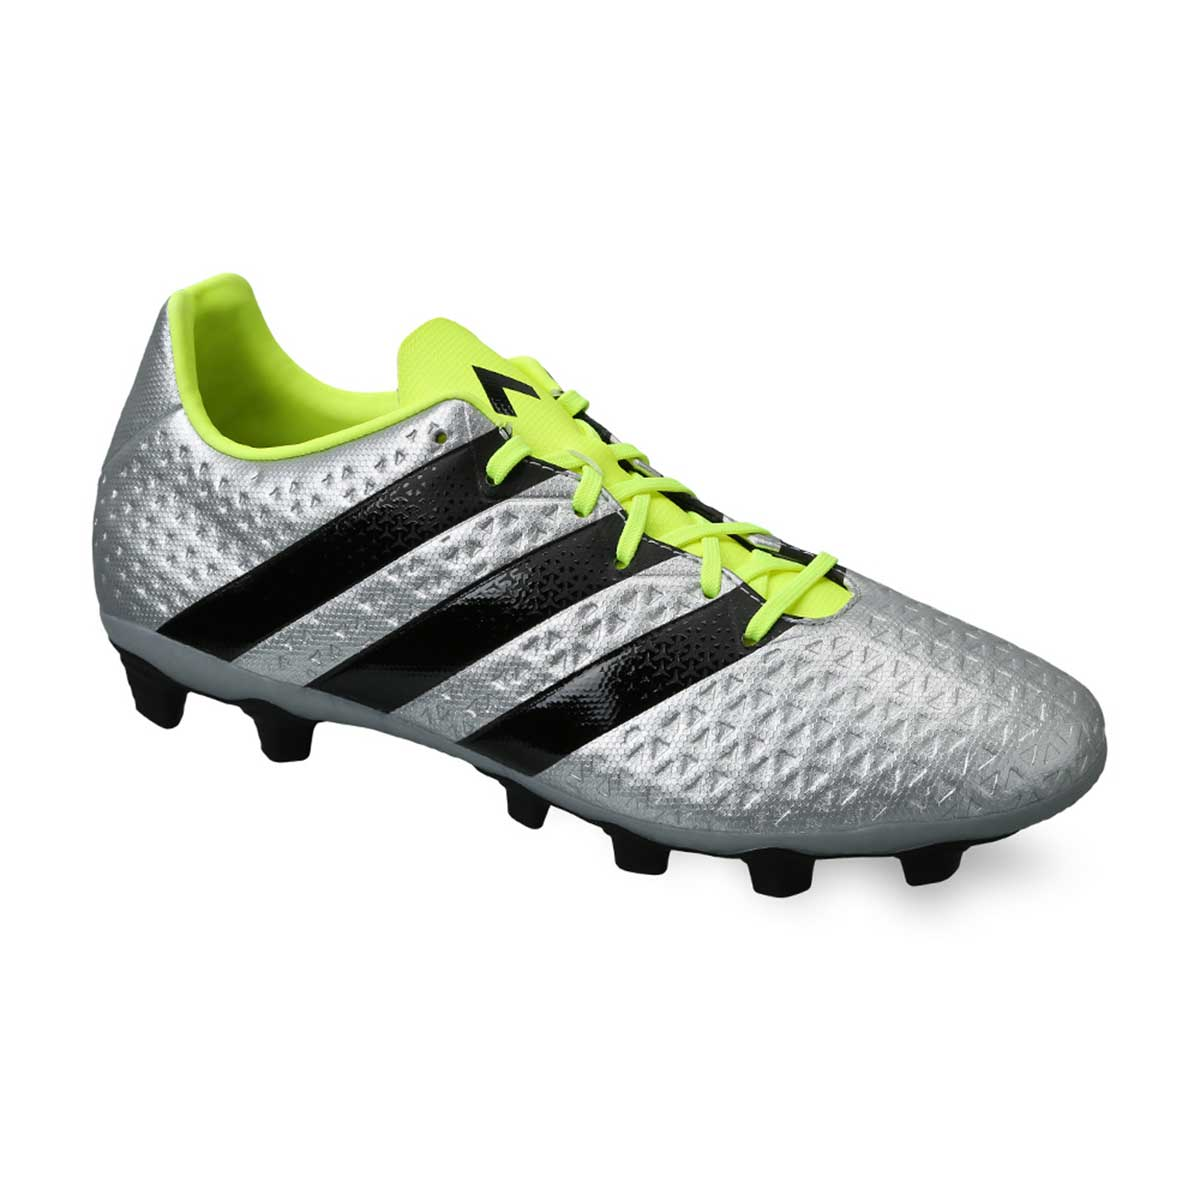 Buy Adidas ACE 16.4 FXG Football Shoes (Silver Black Yellow) Online 9245854a4a